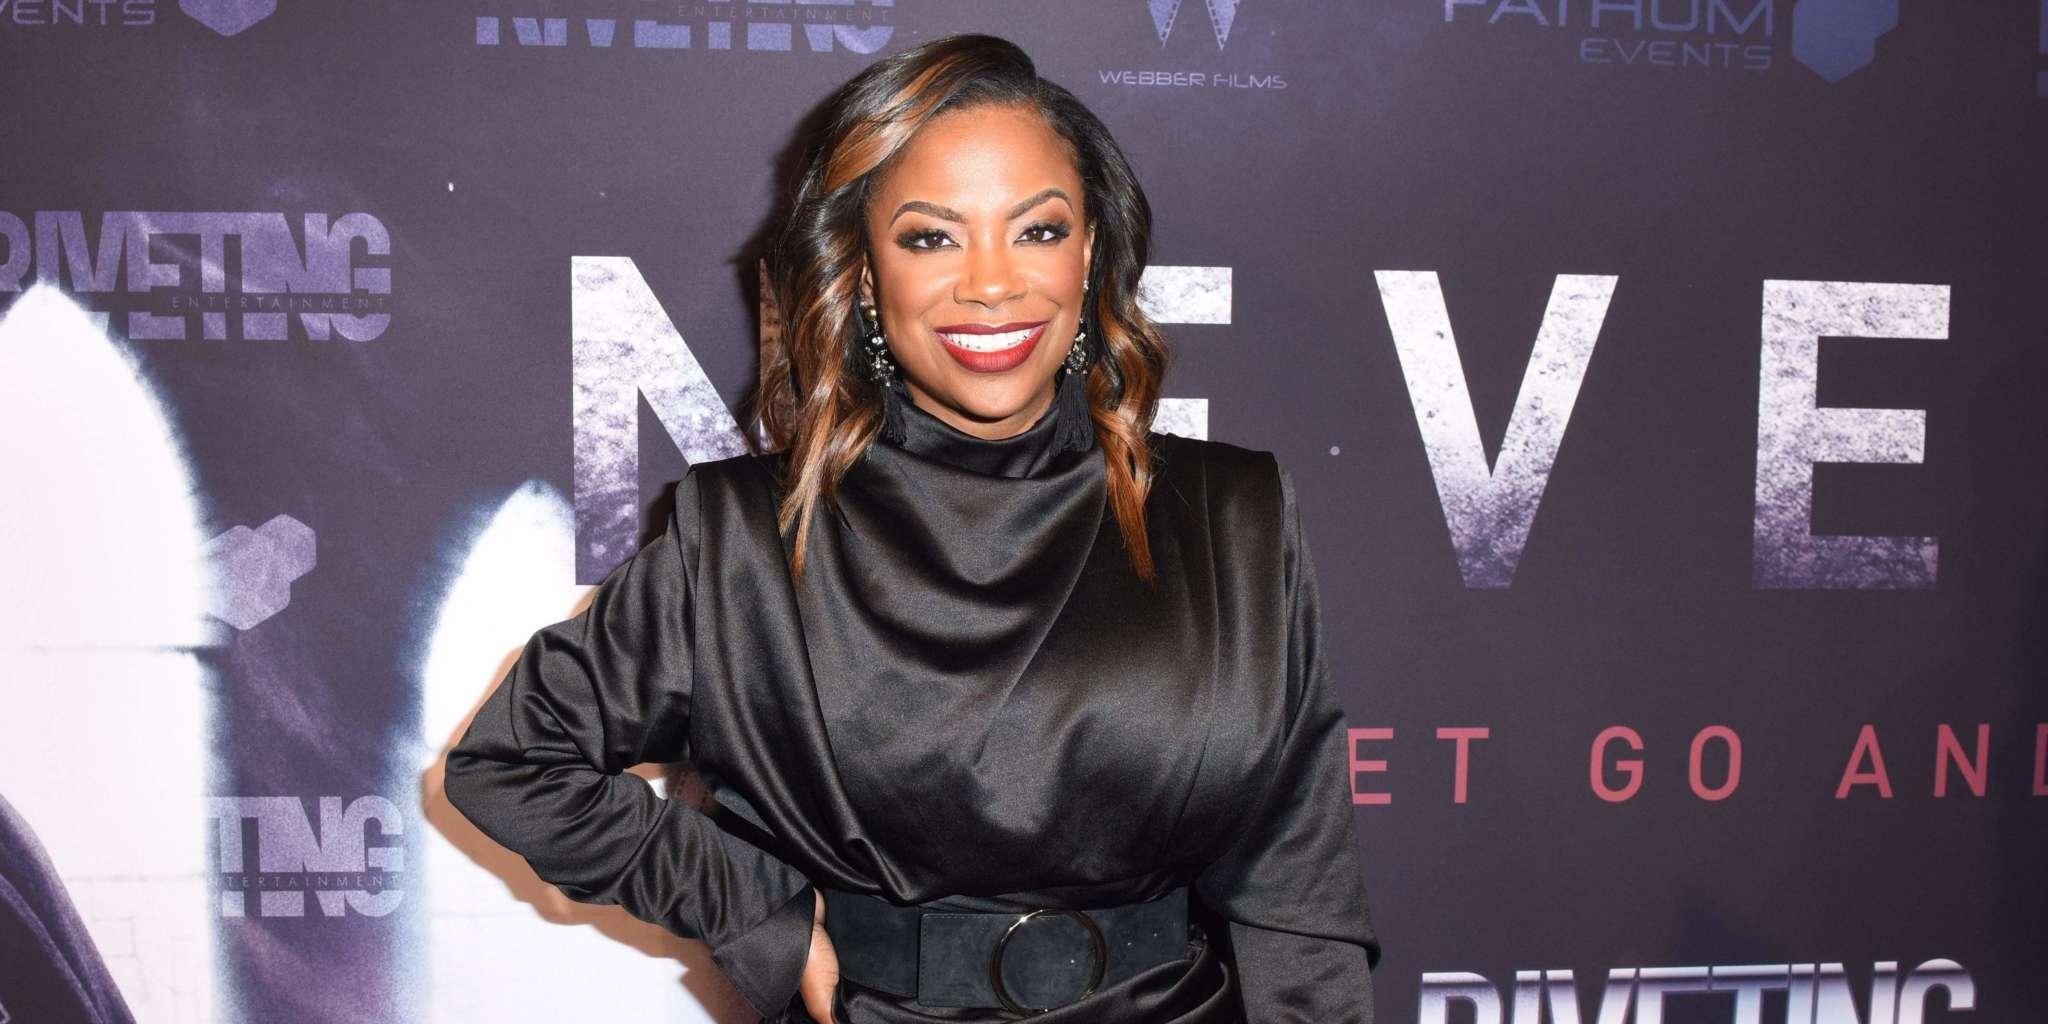 Kandi Burruss Gives Fans The Gift Of A Business - See Her Video